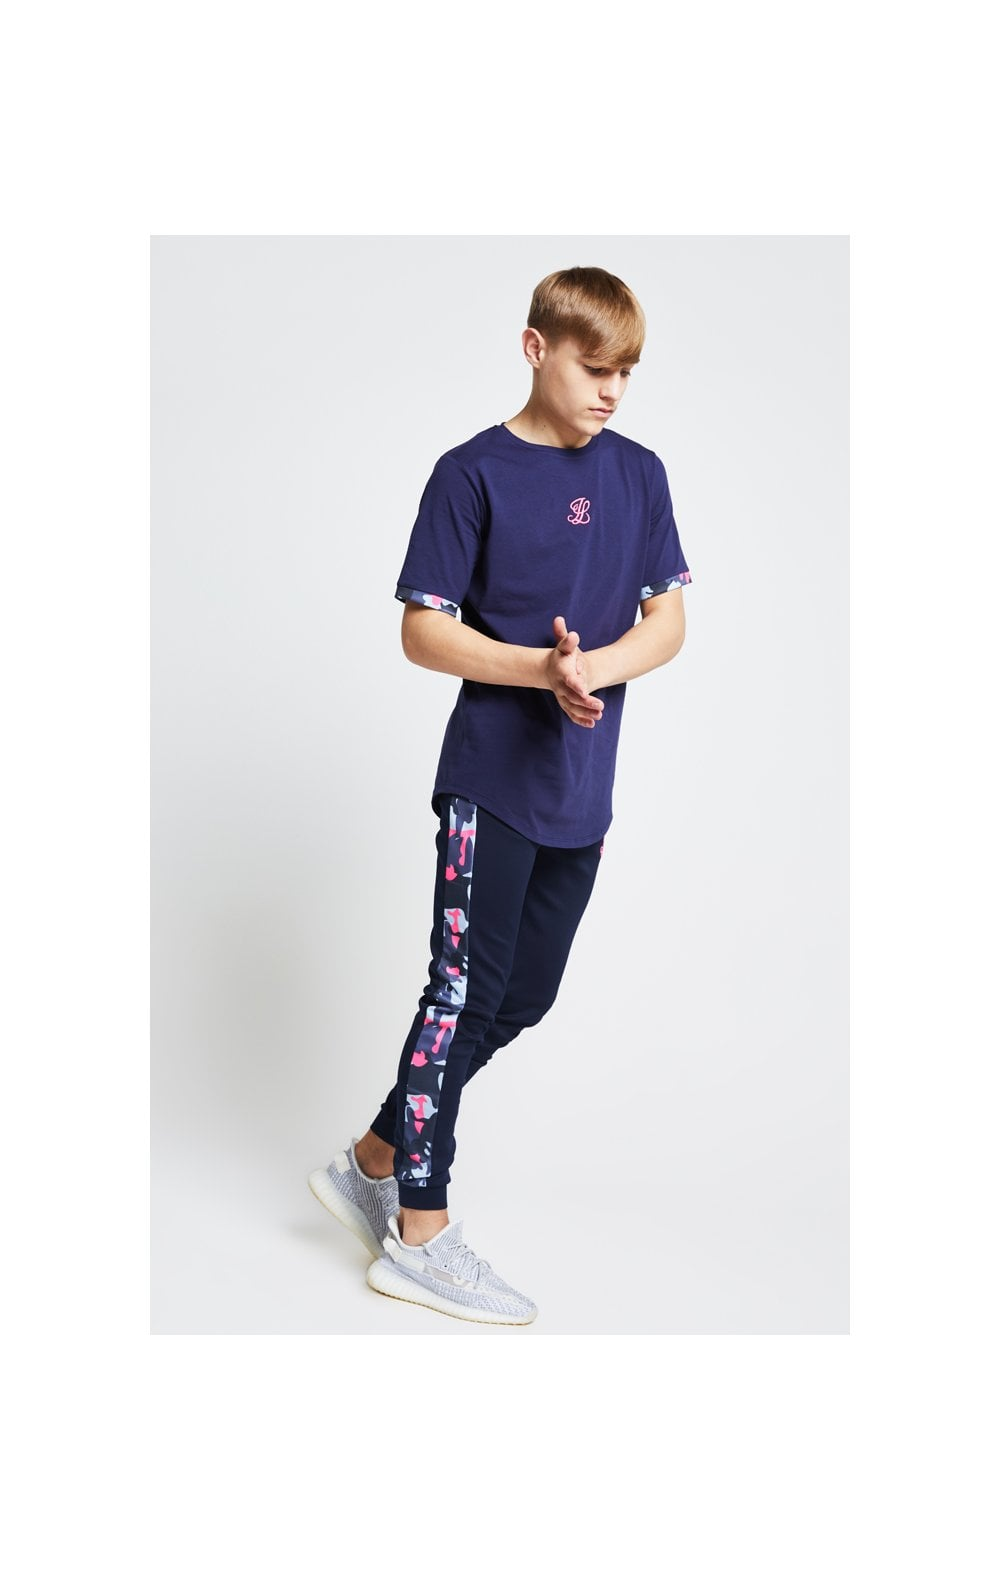 Illusive London Contrast Cuff Tee – Navy & Neon Pink Camo (4)